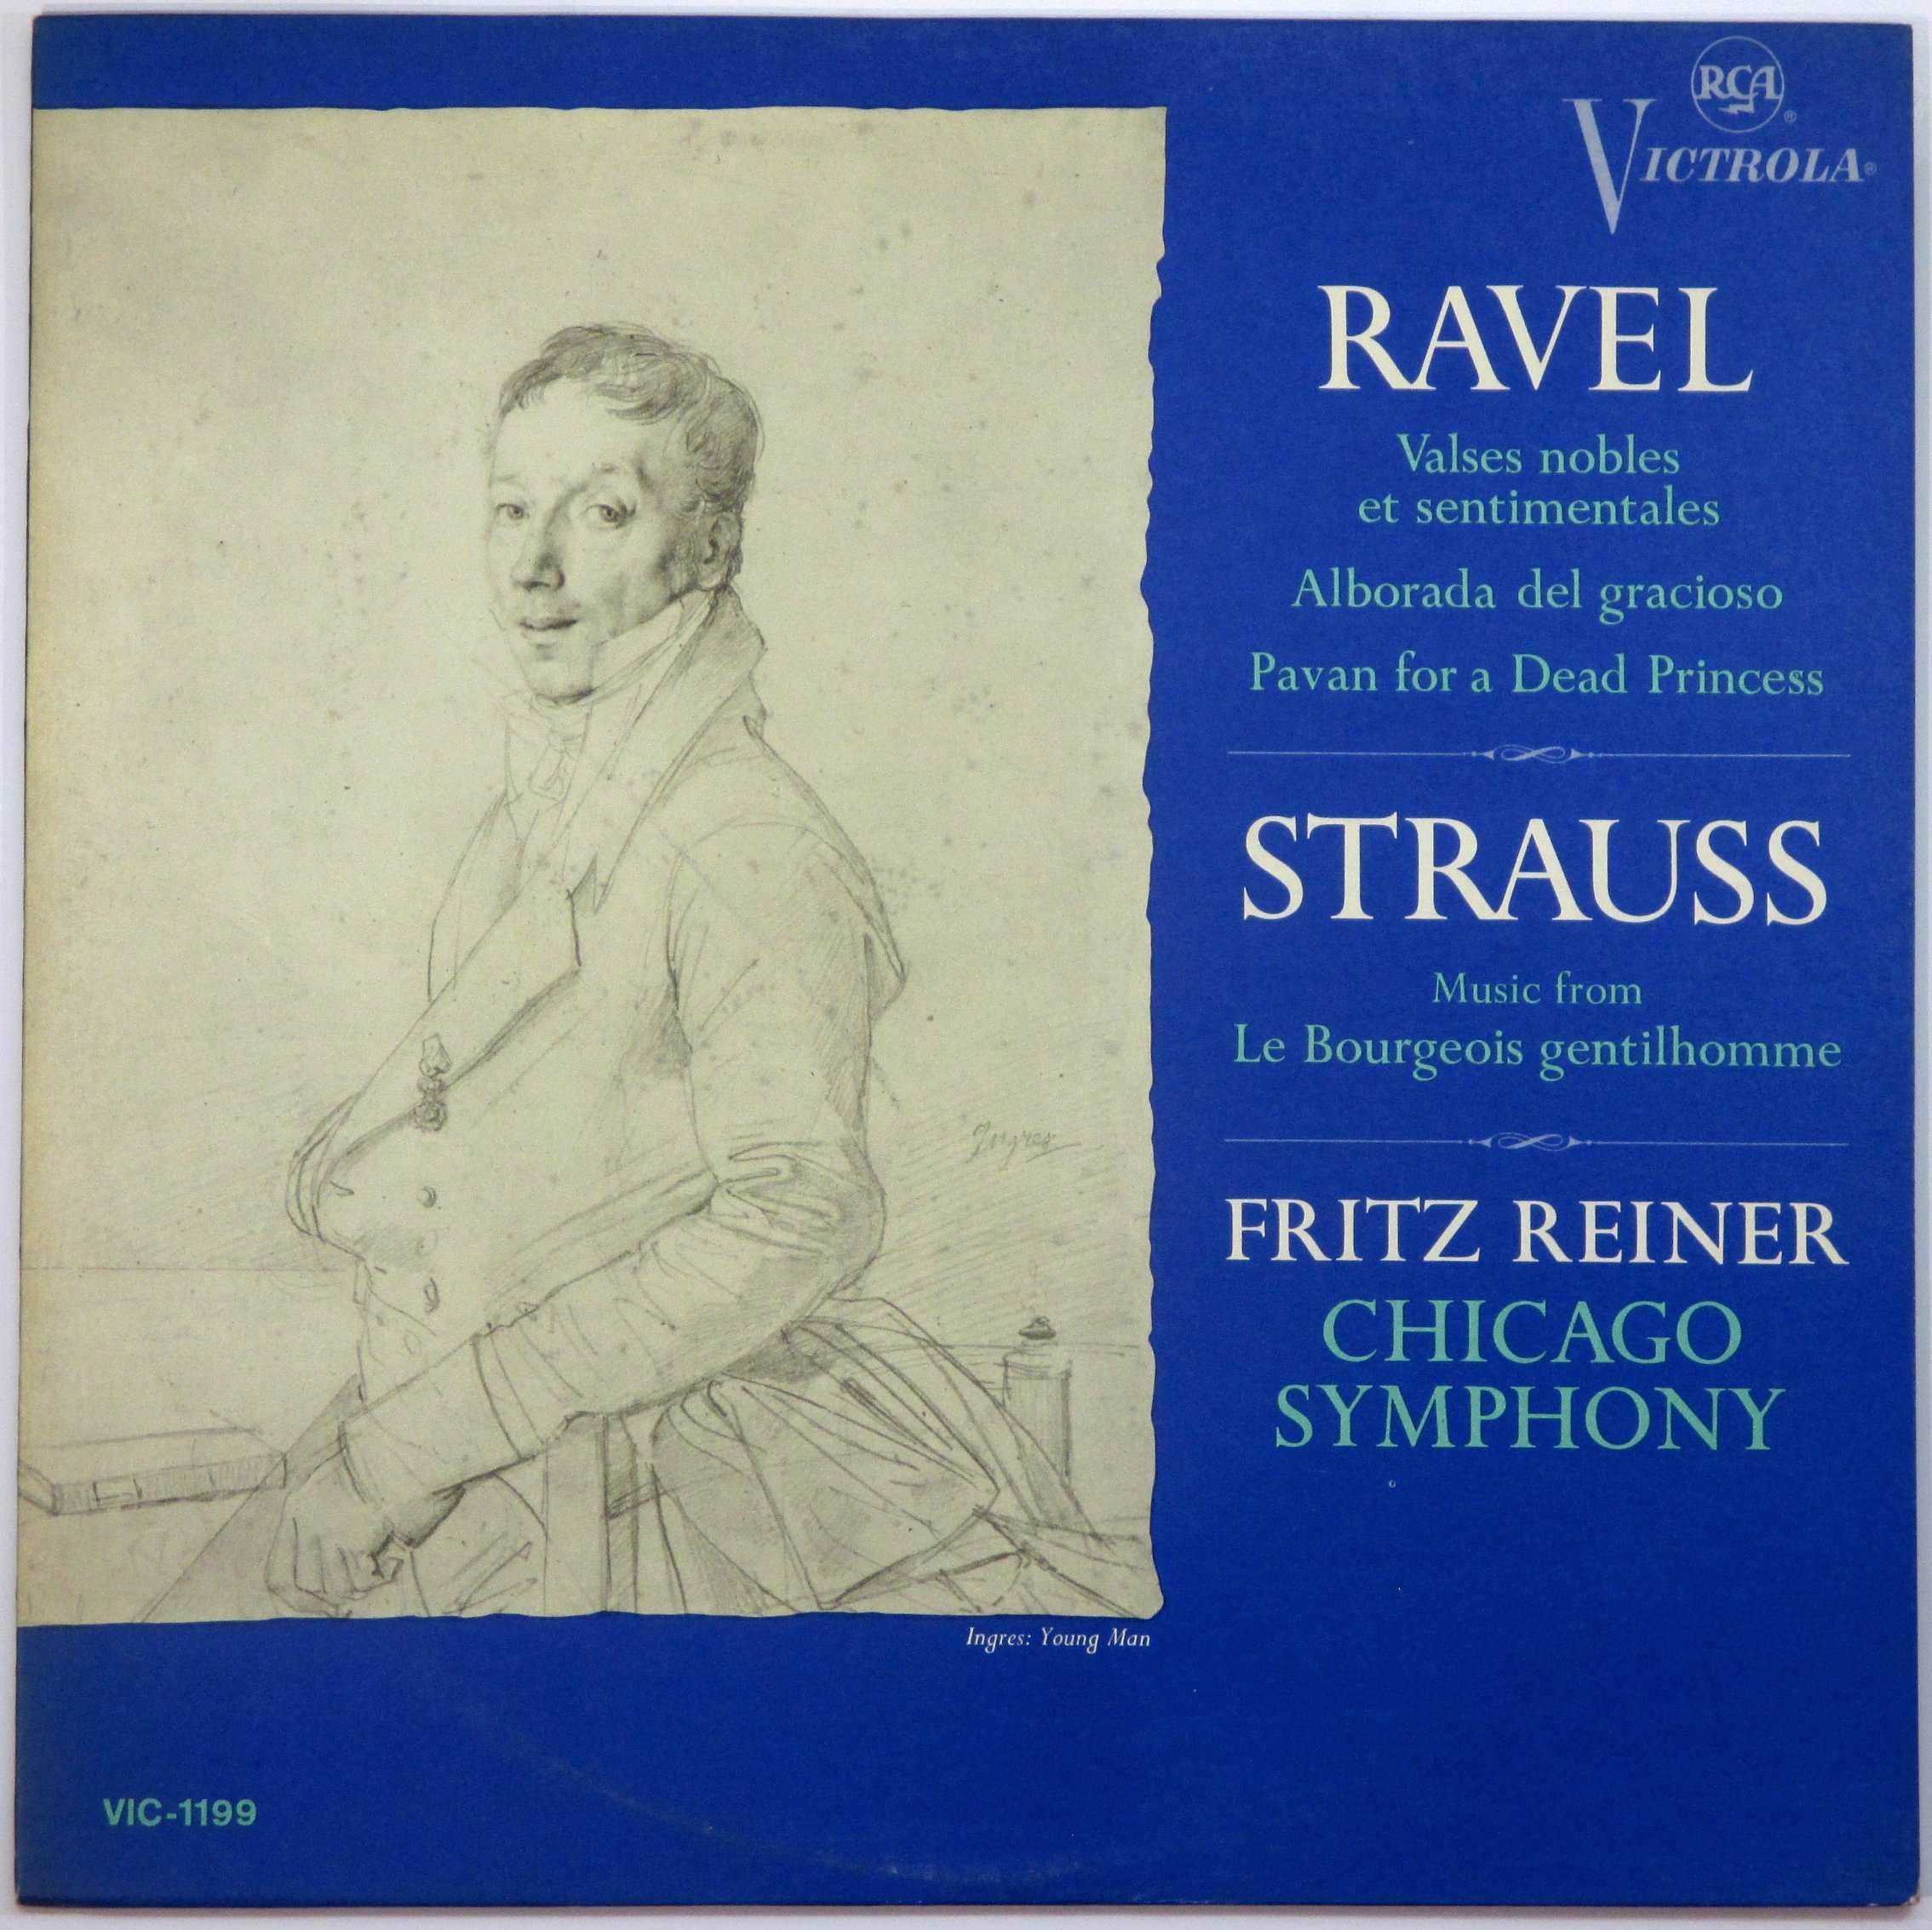 Ravel: Valses Nobles Et Sentimentales, Alborada Del Gracioso, Pavan for a Dead Princess / Strauss: Music From Le Bourgeois Gentilhomme - Fritz Reiner, Chicago Symphony by RCA Victrola VIC-1199 Mono